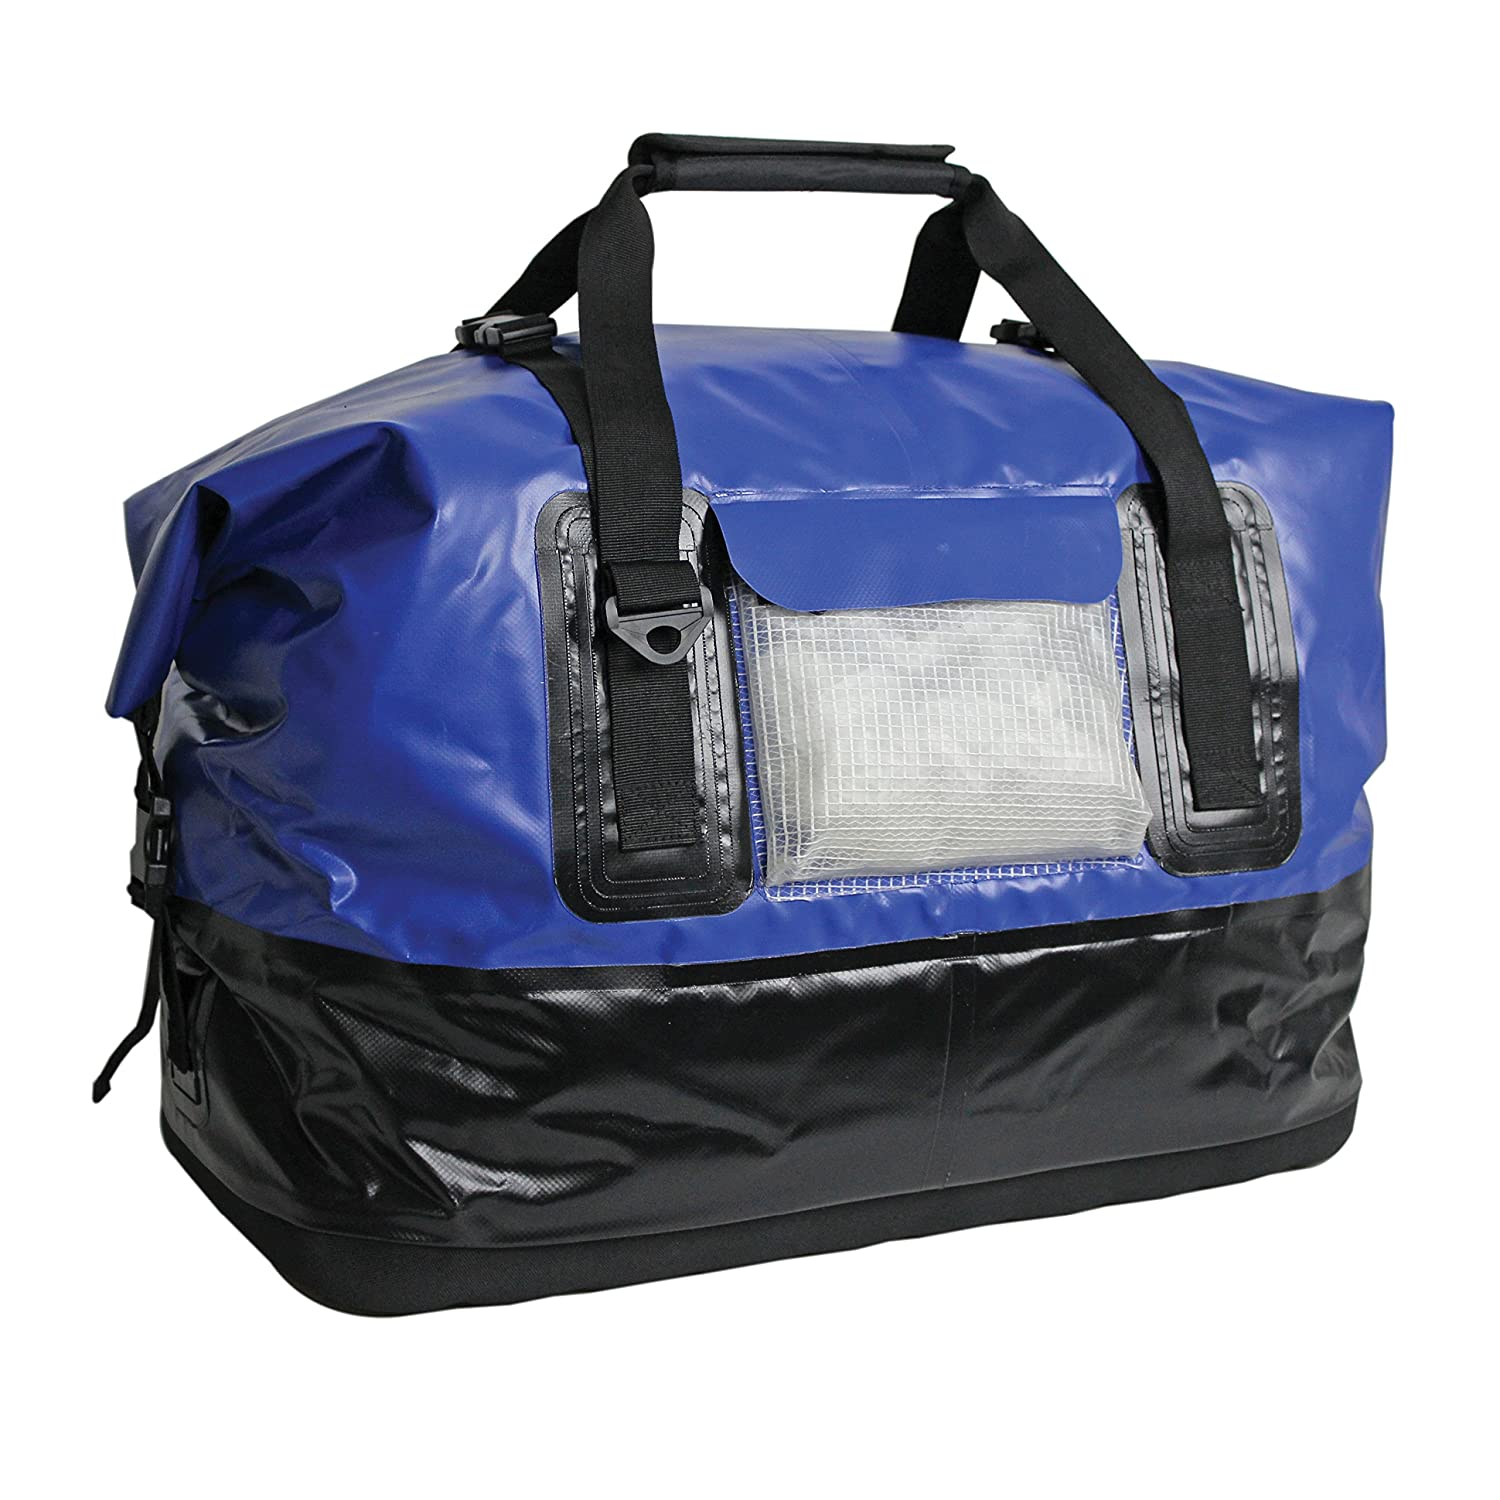 c8e3b0499089 Amazon.com  Extreme Max 3006.7342 Dry Tech Waterproof Roll-Top Duffel Bag